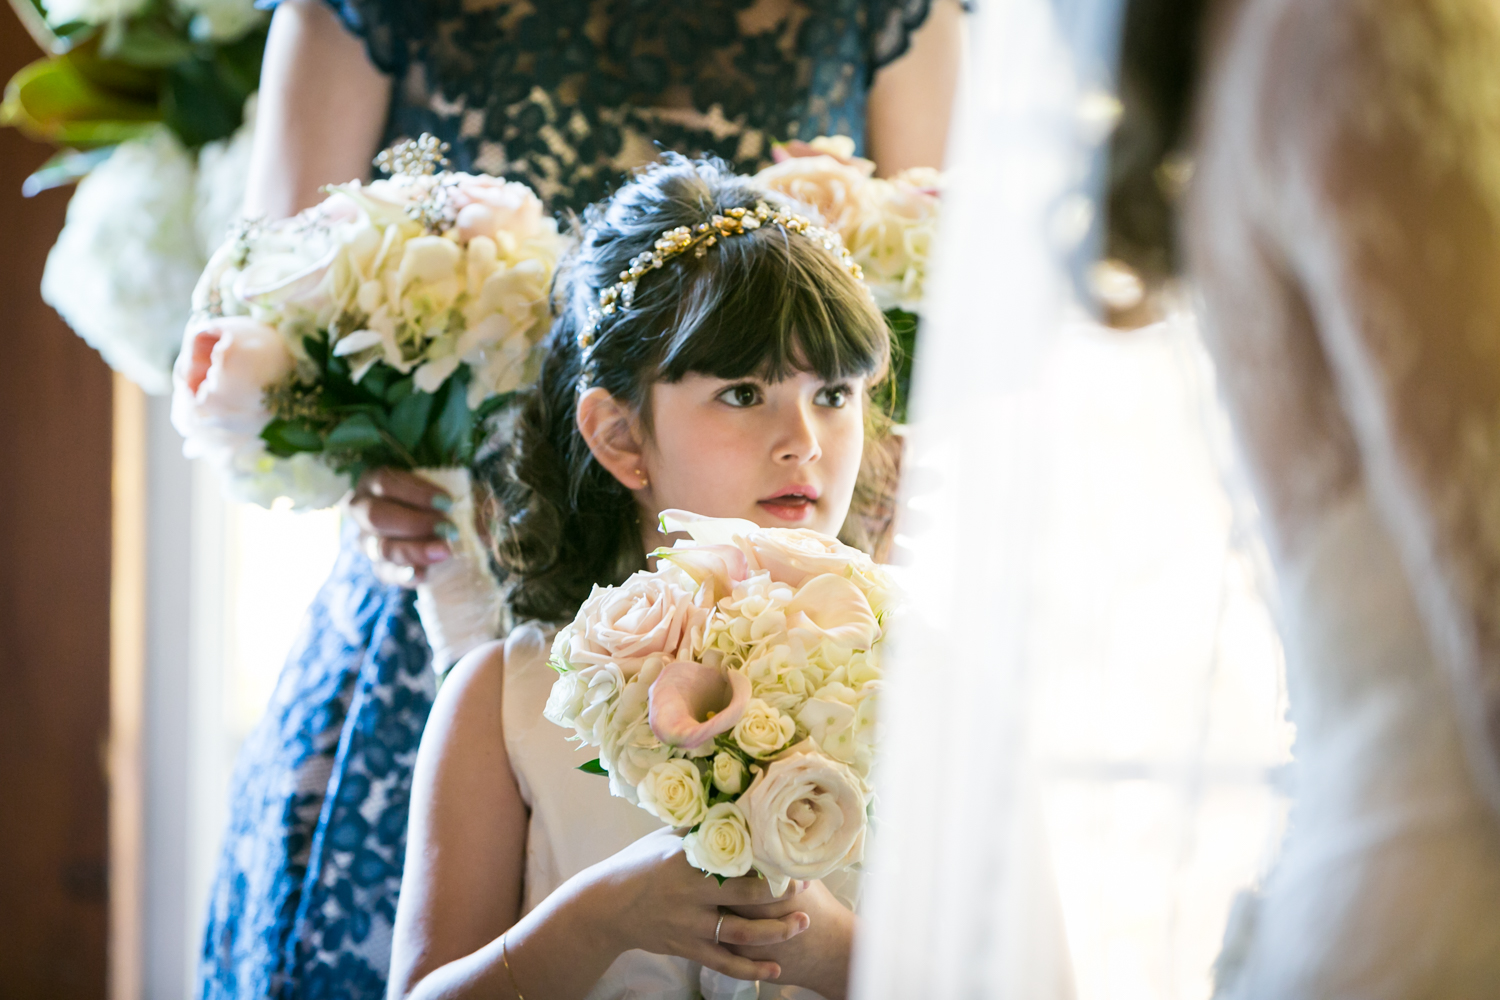 Flower girl watching ceremony at a Loeb Boathouse wedding in Central Park